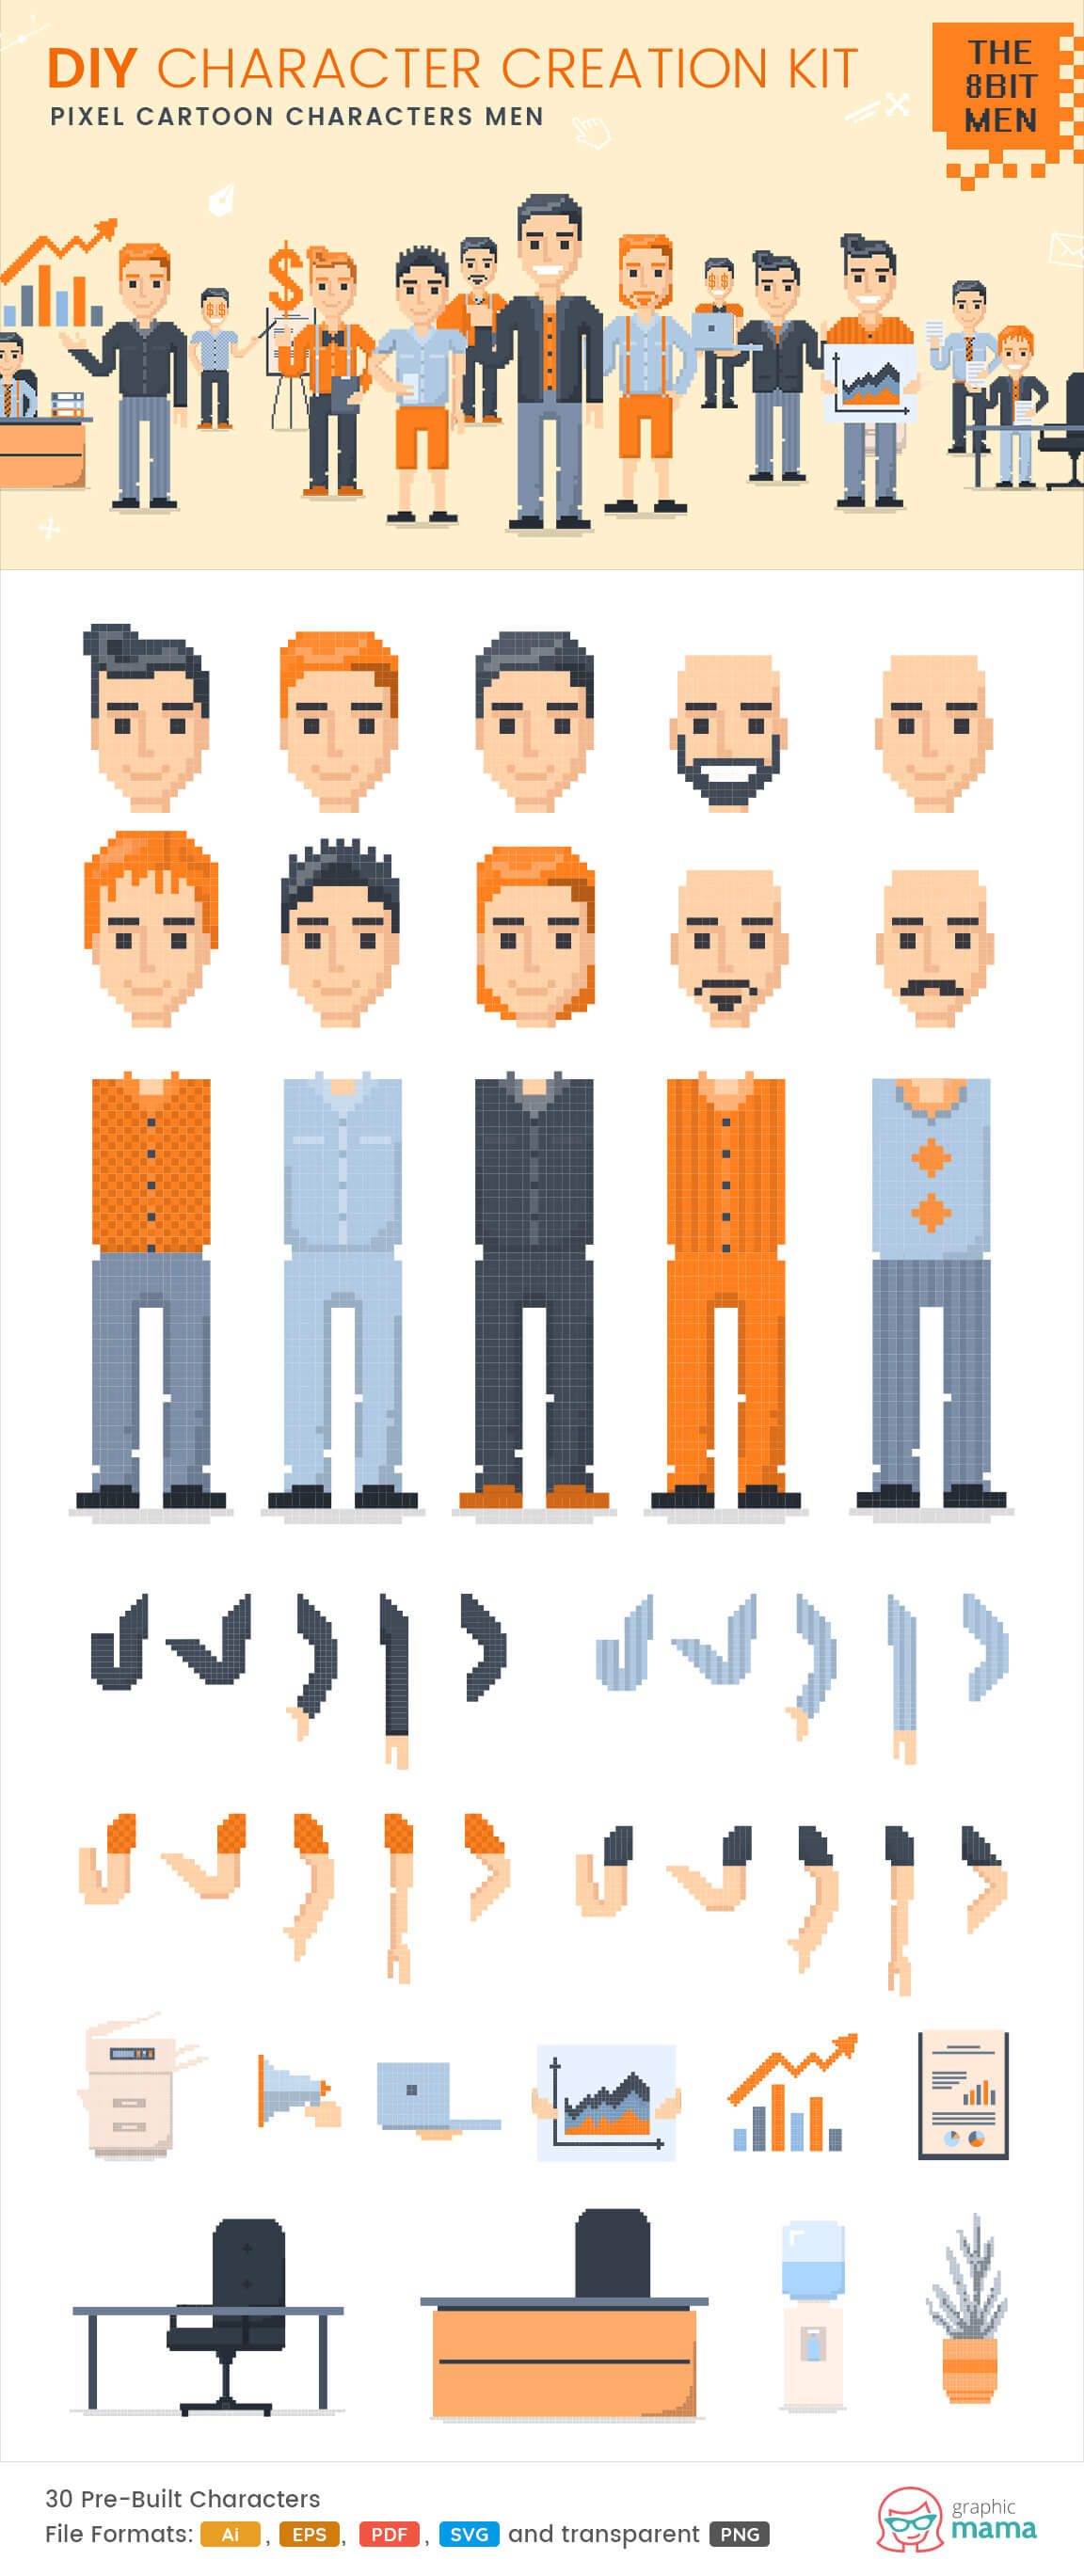 create your own pixel character vector diy kit by GraphicMama